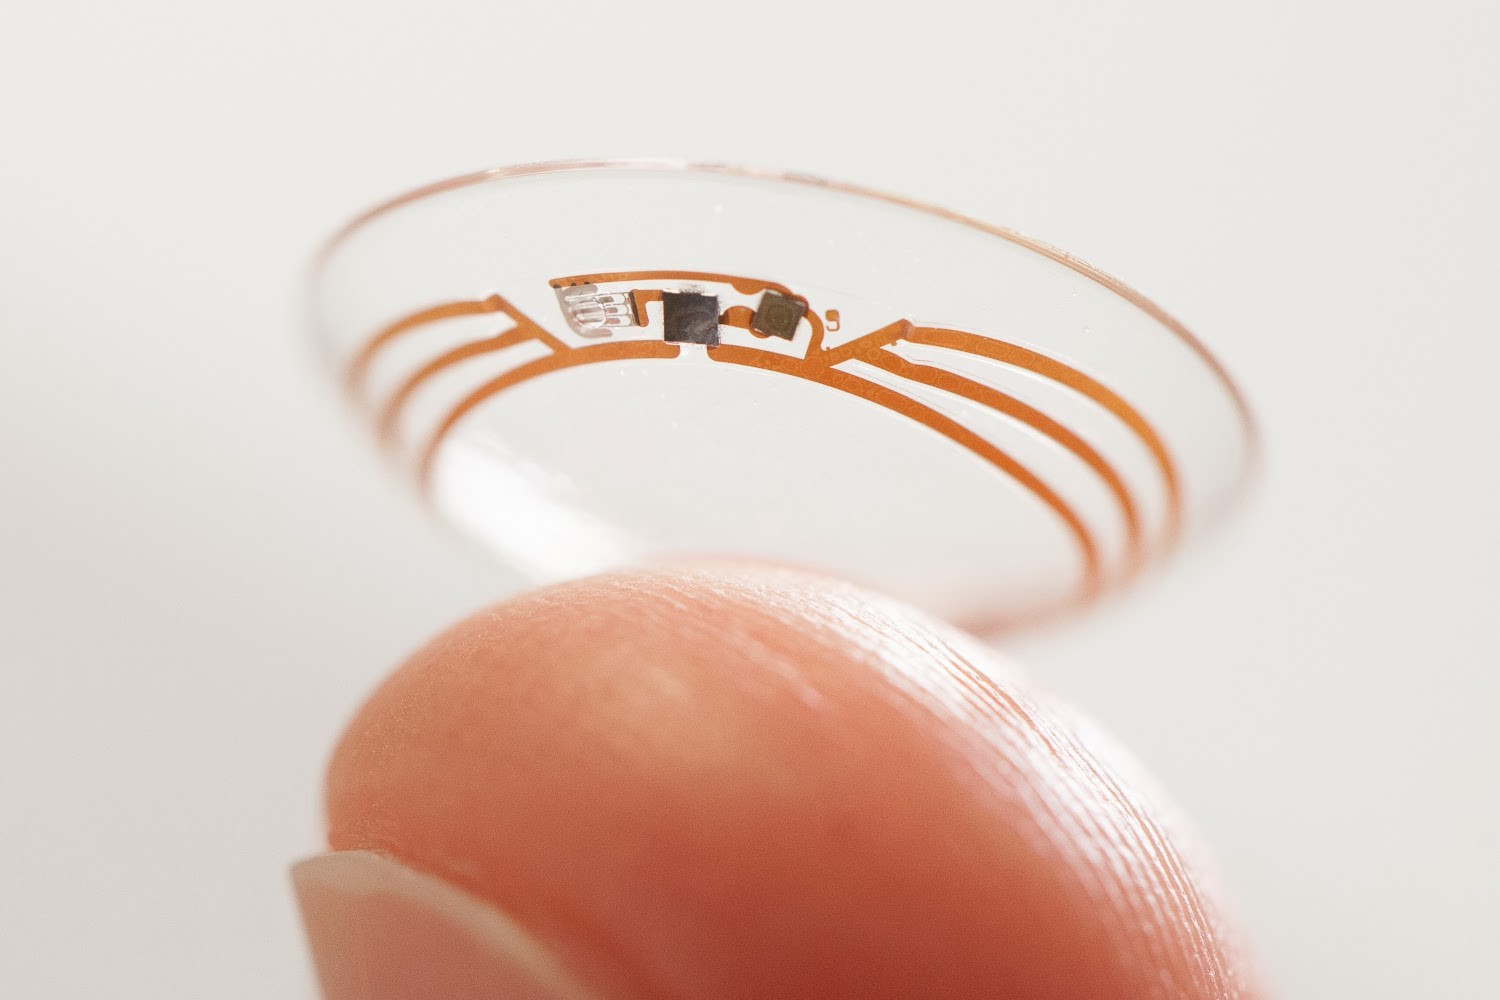 Contact lens with chip